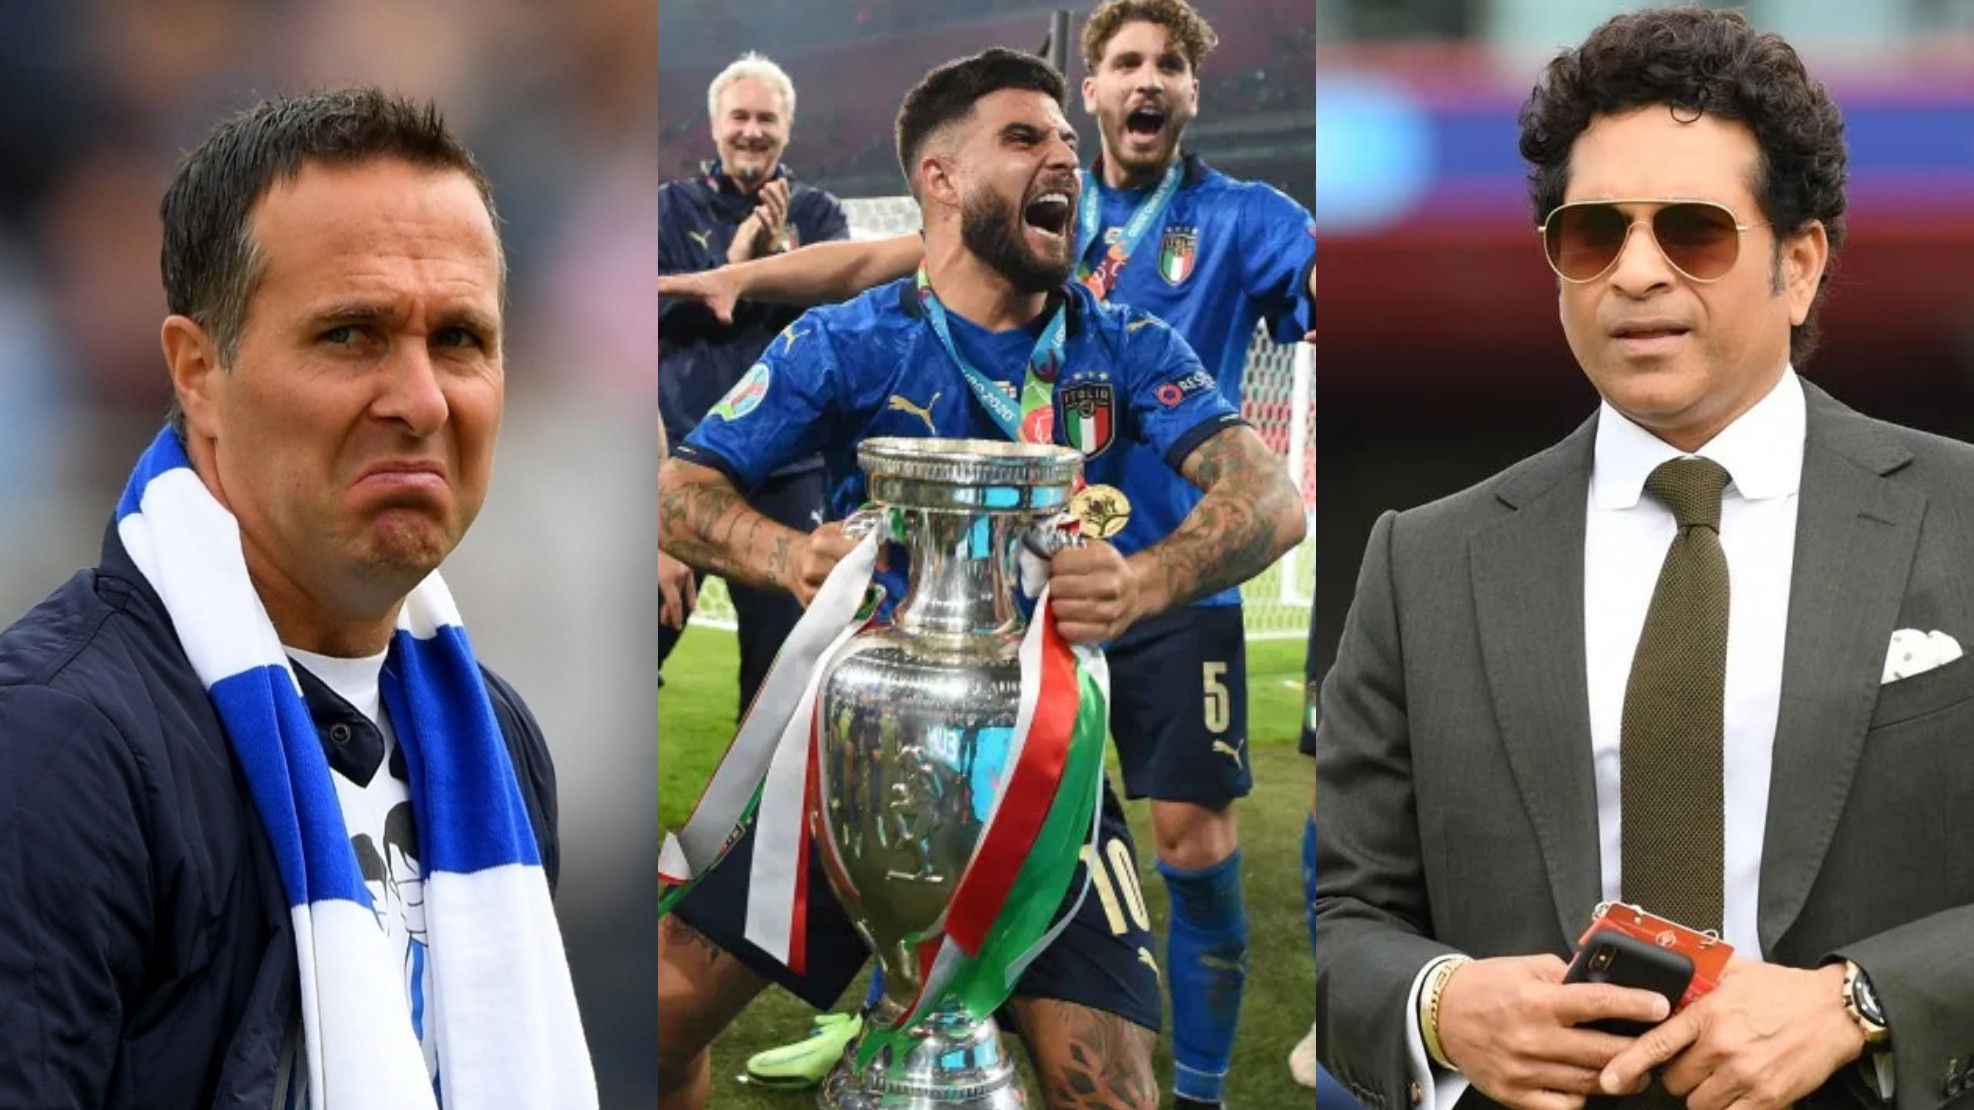 Cricket fraternity reacts to Italy defeating England in Euro 2020 final